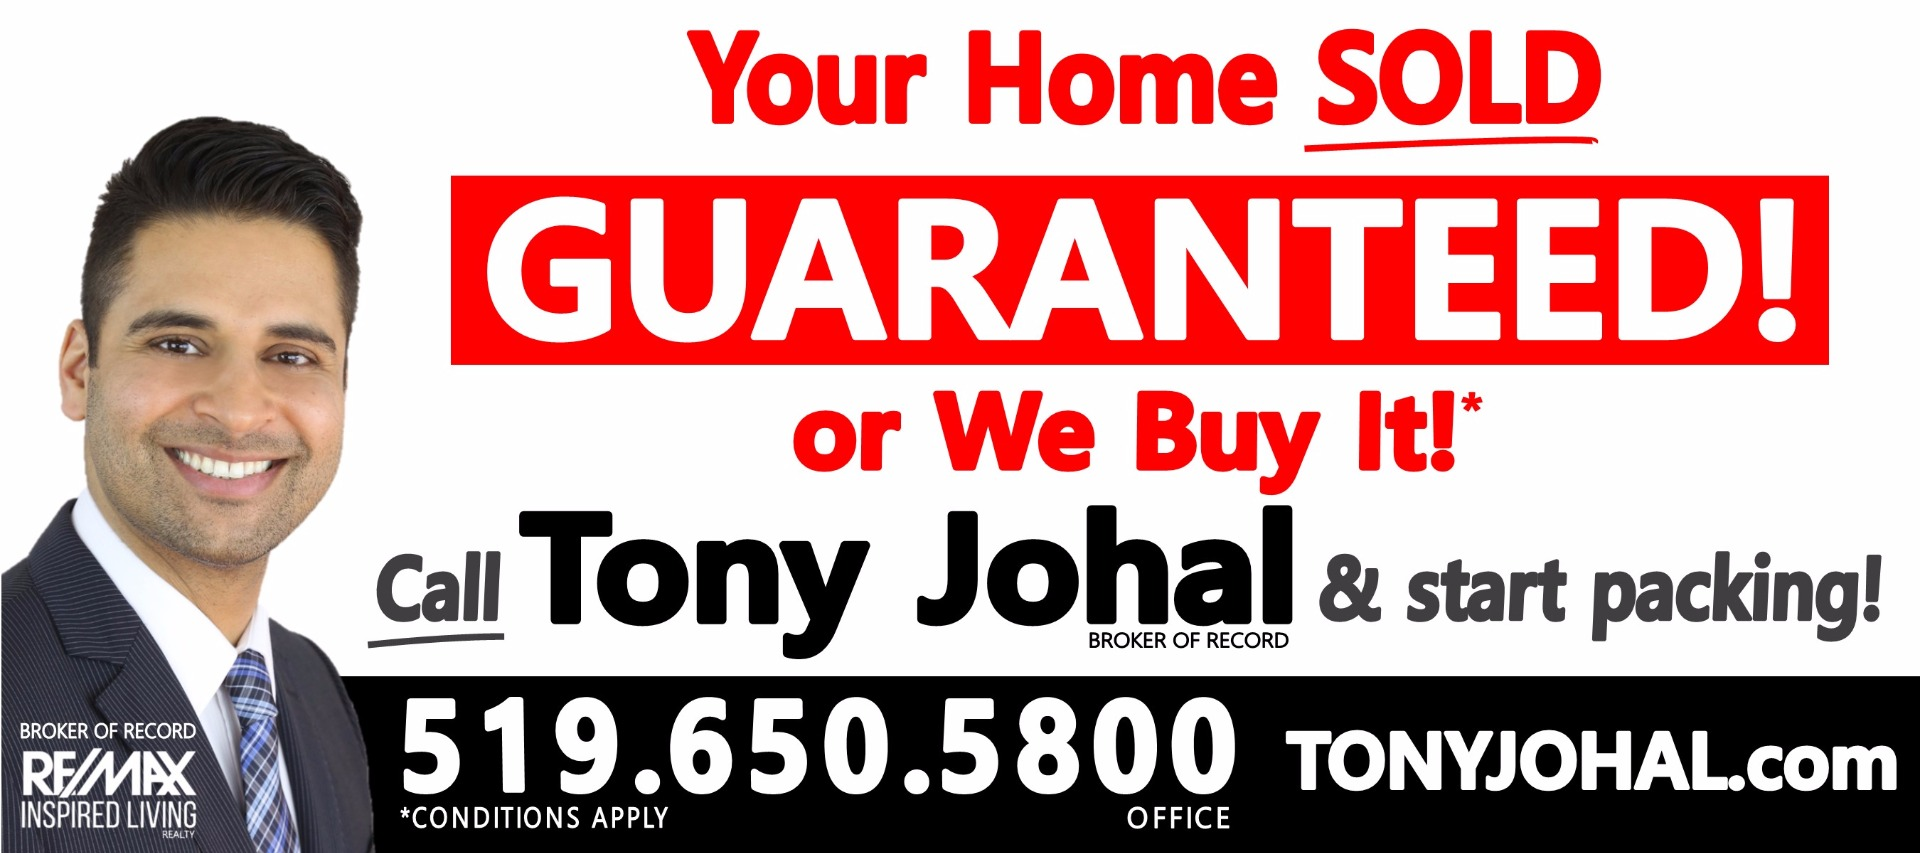 YOUR HOME SOLD GUARANTEED OR WE BUY IT!*